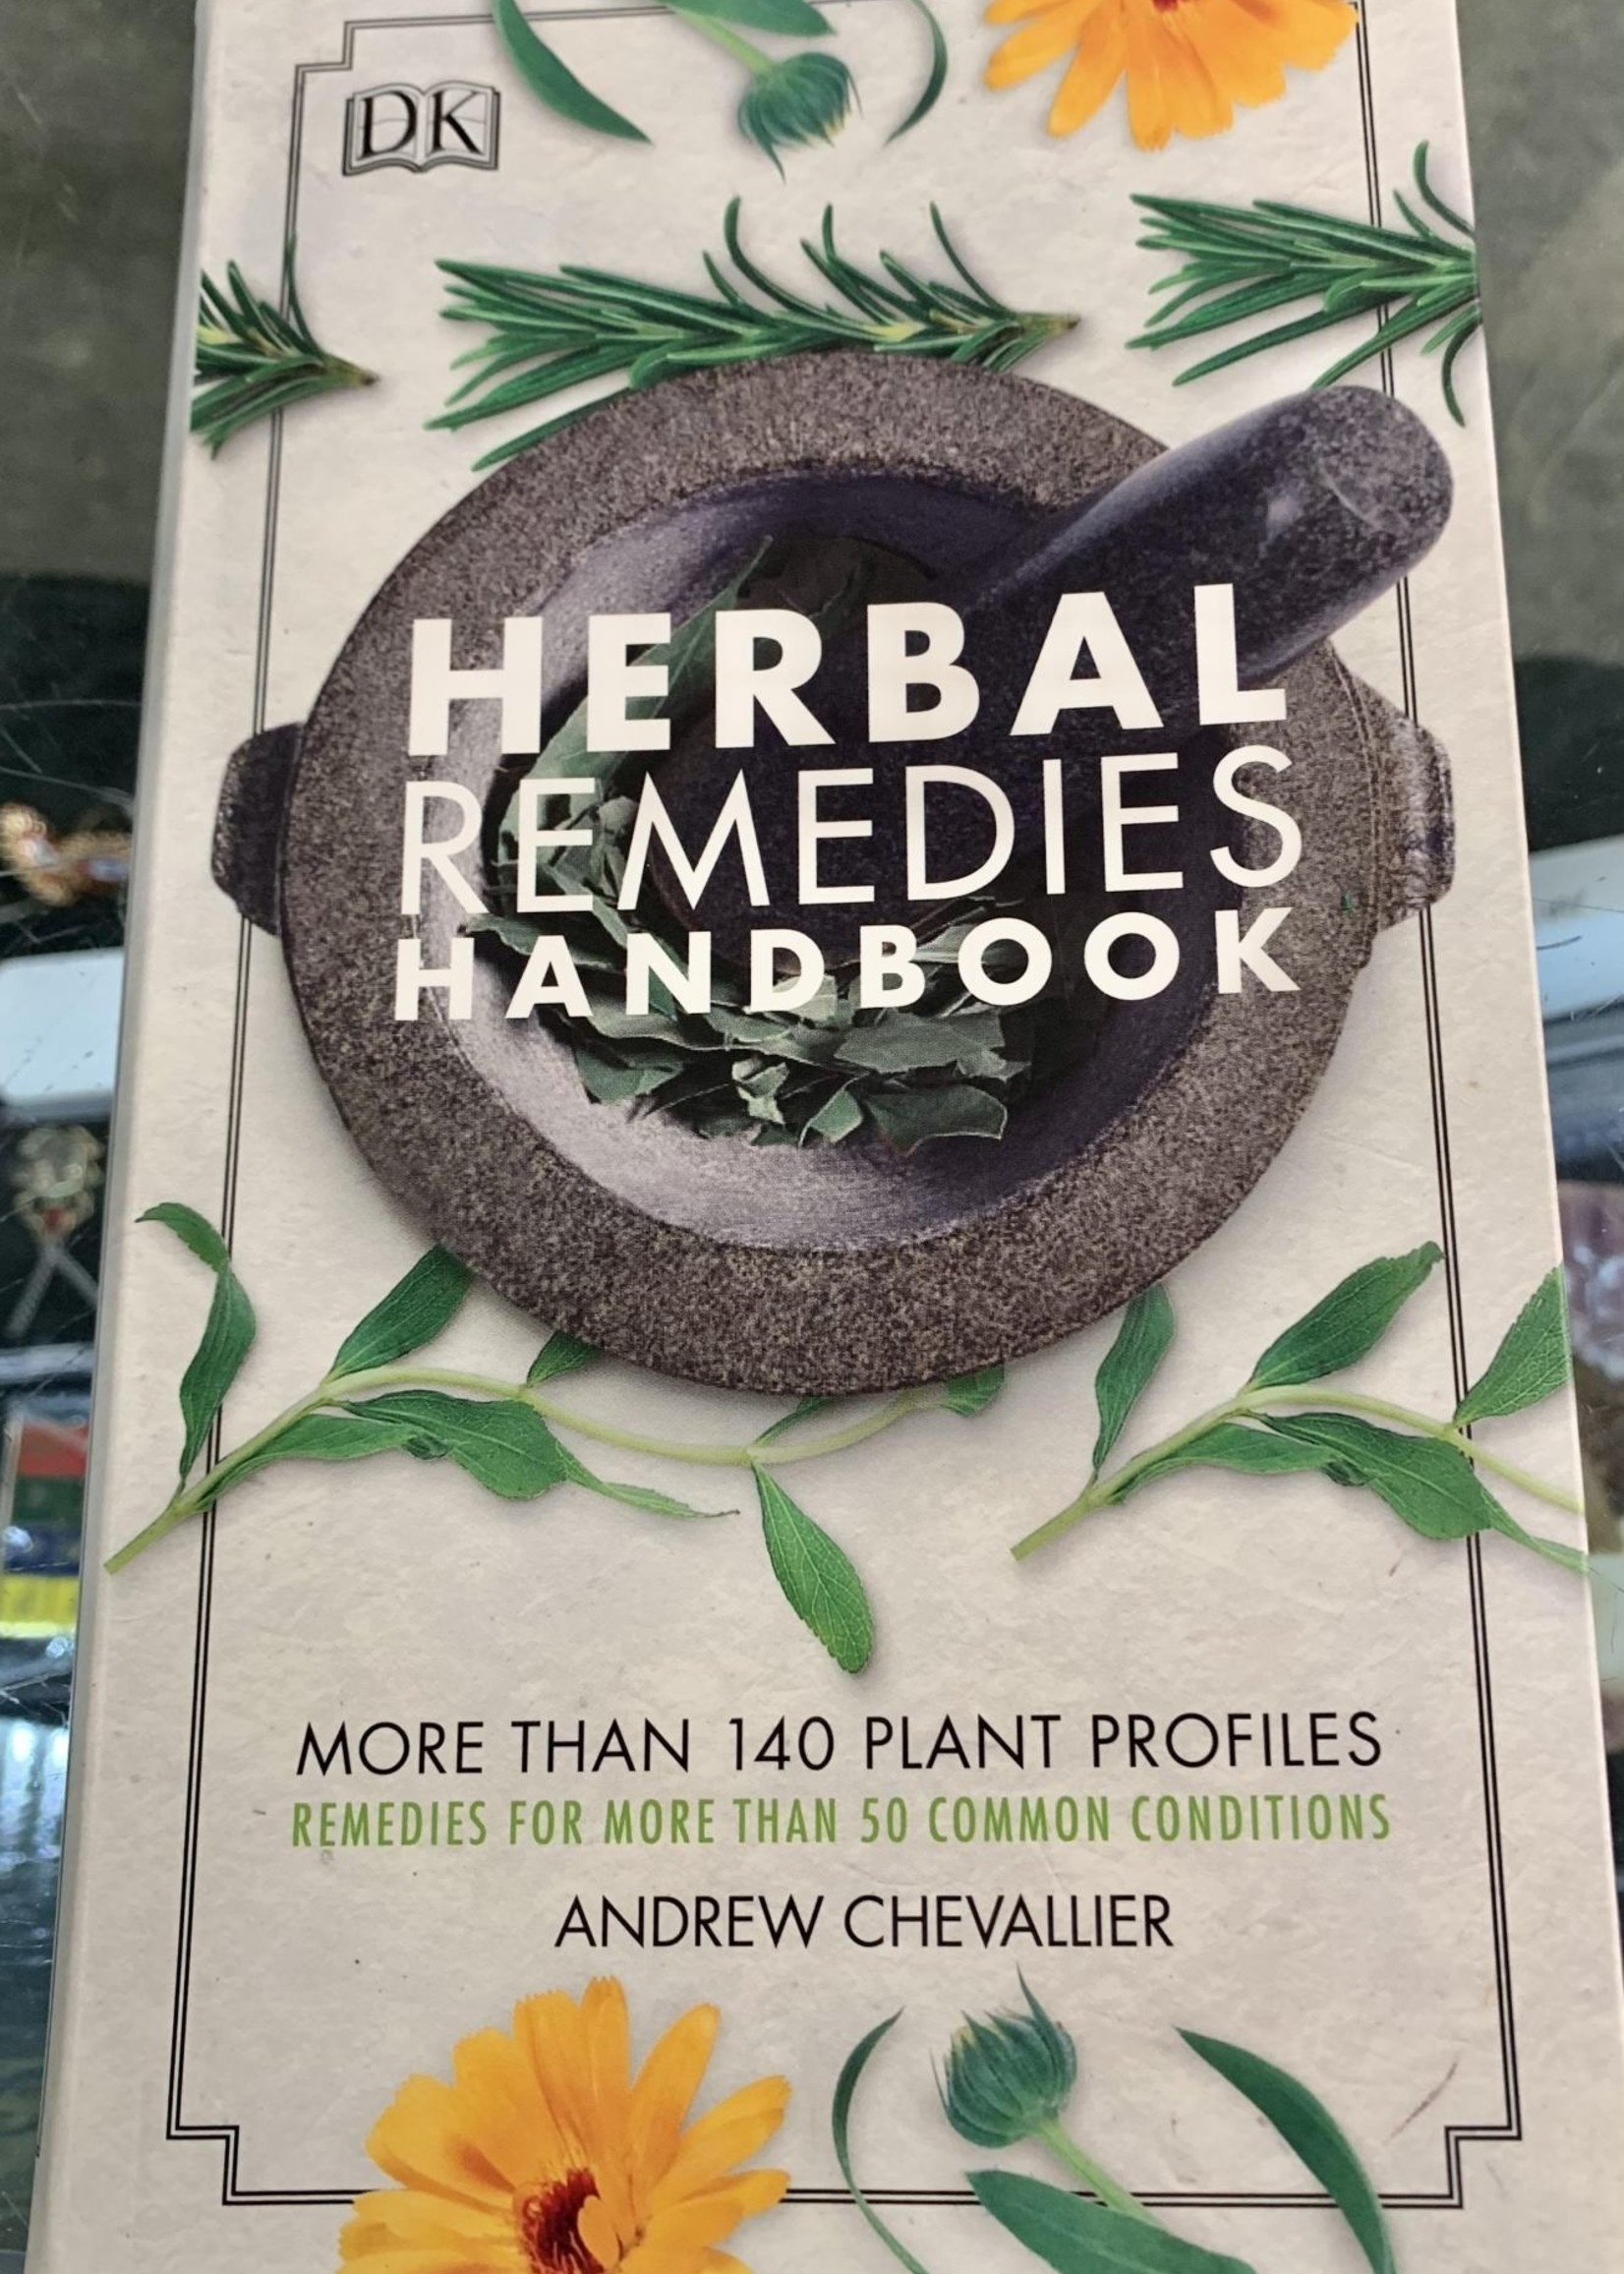 Herbal Remedies Handbook MORE THAN 140 PLANT PROFILES; REMEDIES FOR OVER 50 COMMON CONDITIONS - By ANDREW CHEVALLIER -